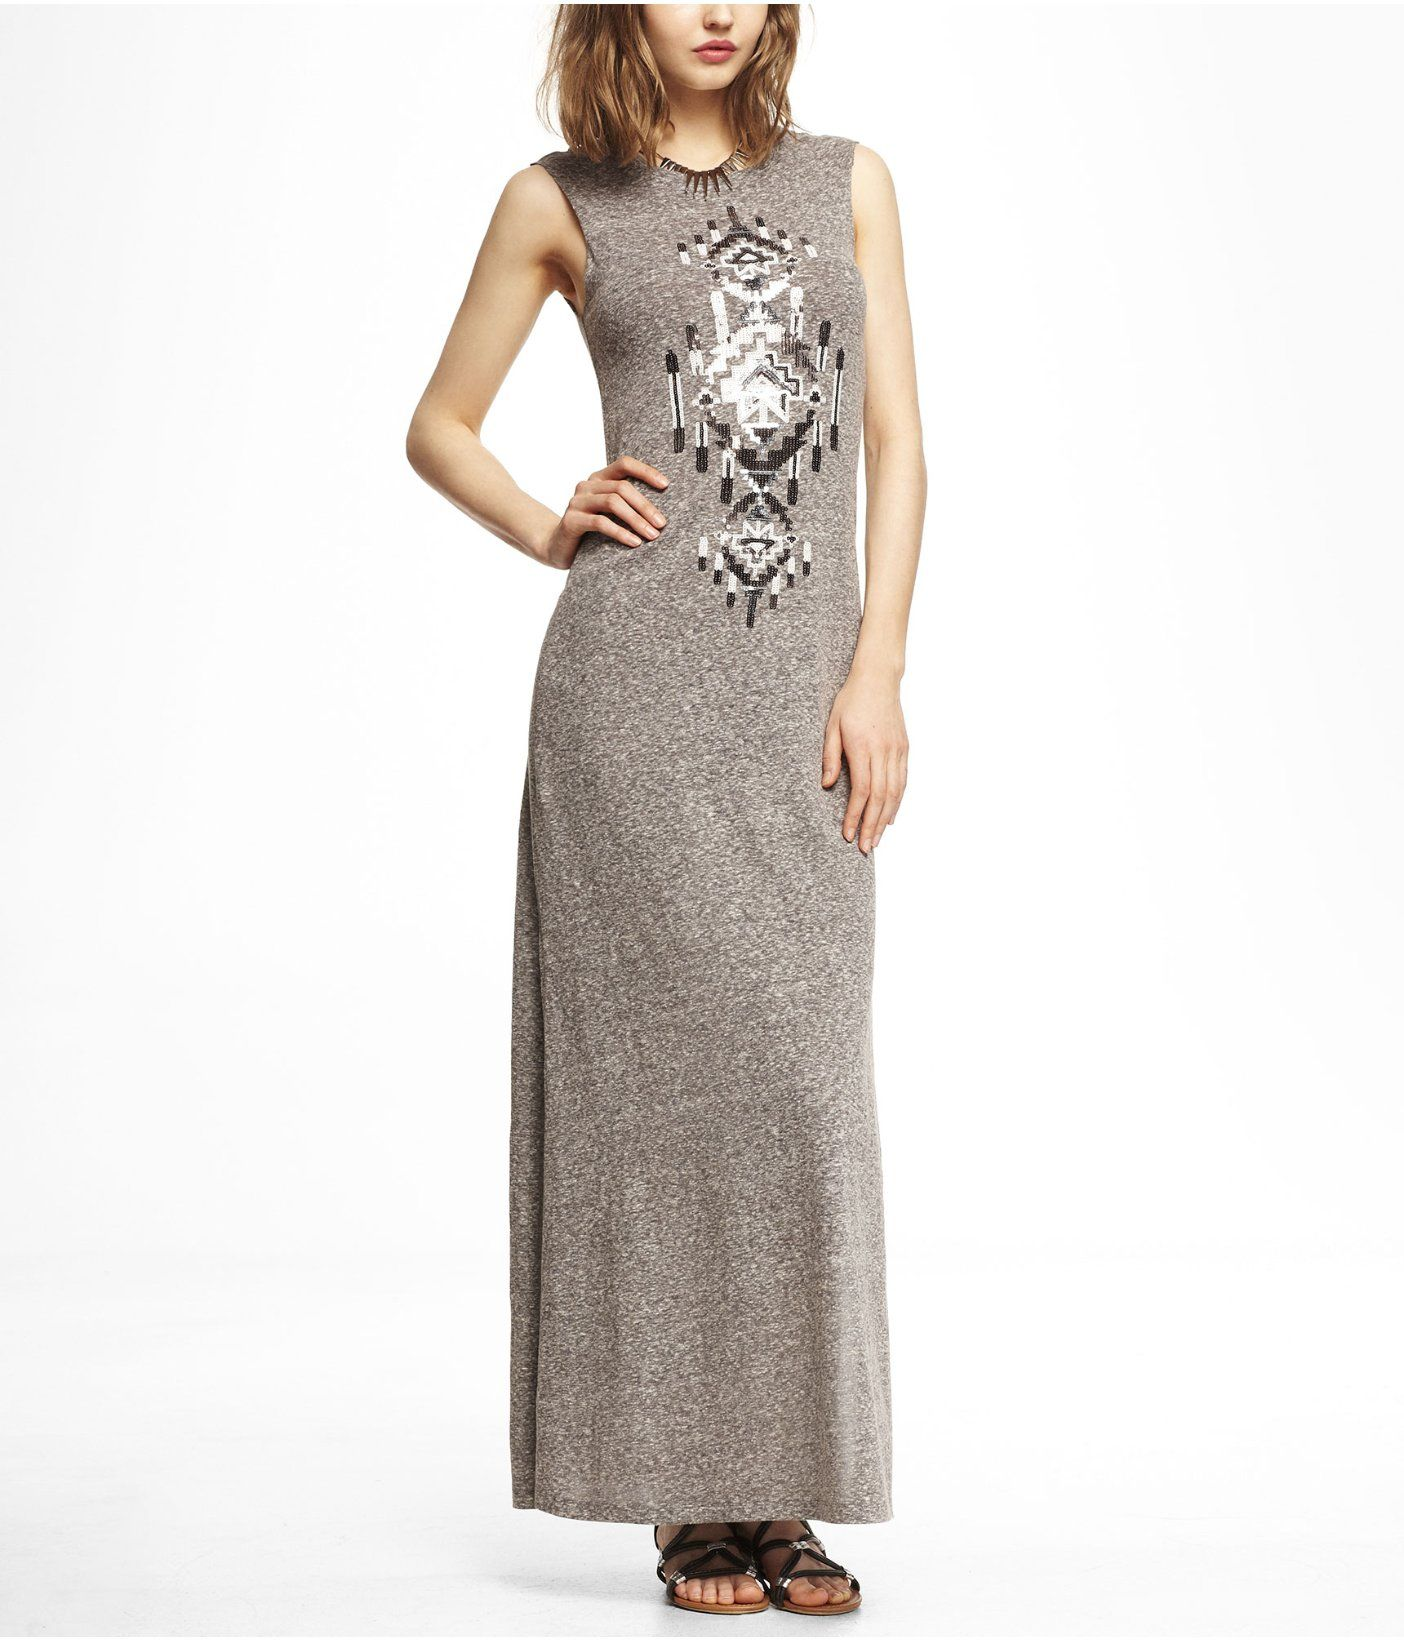 SEQUIN EMBELLISHED NEP KNIT MAXI DRESS | Express